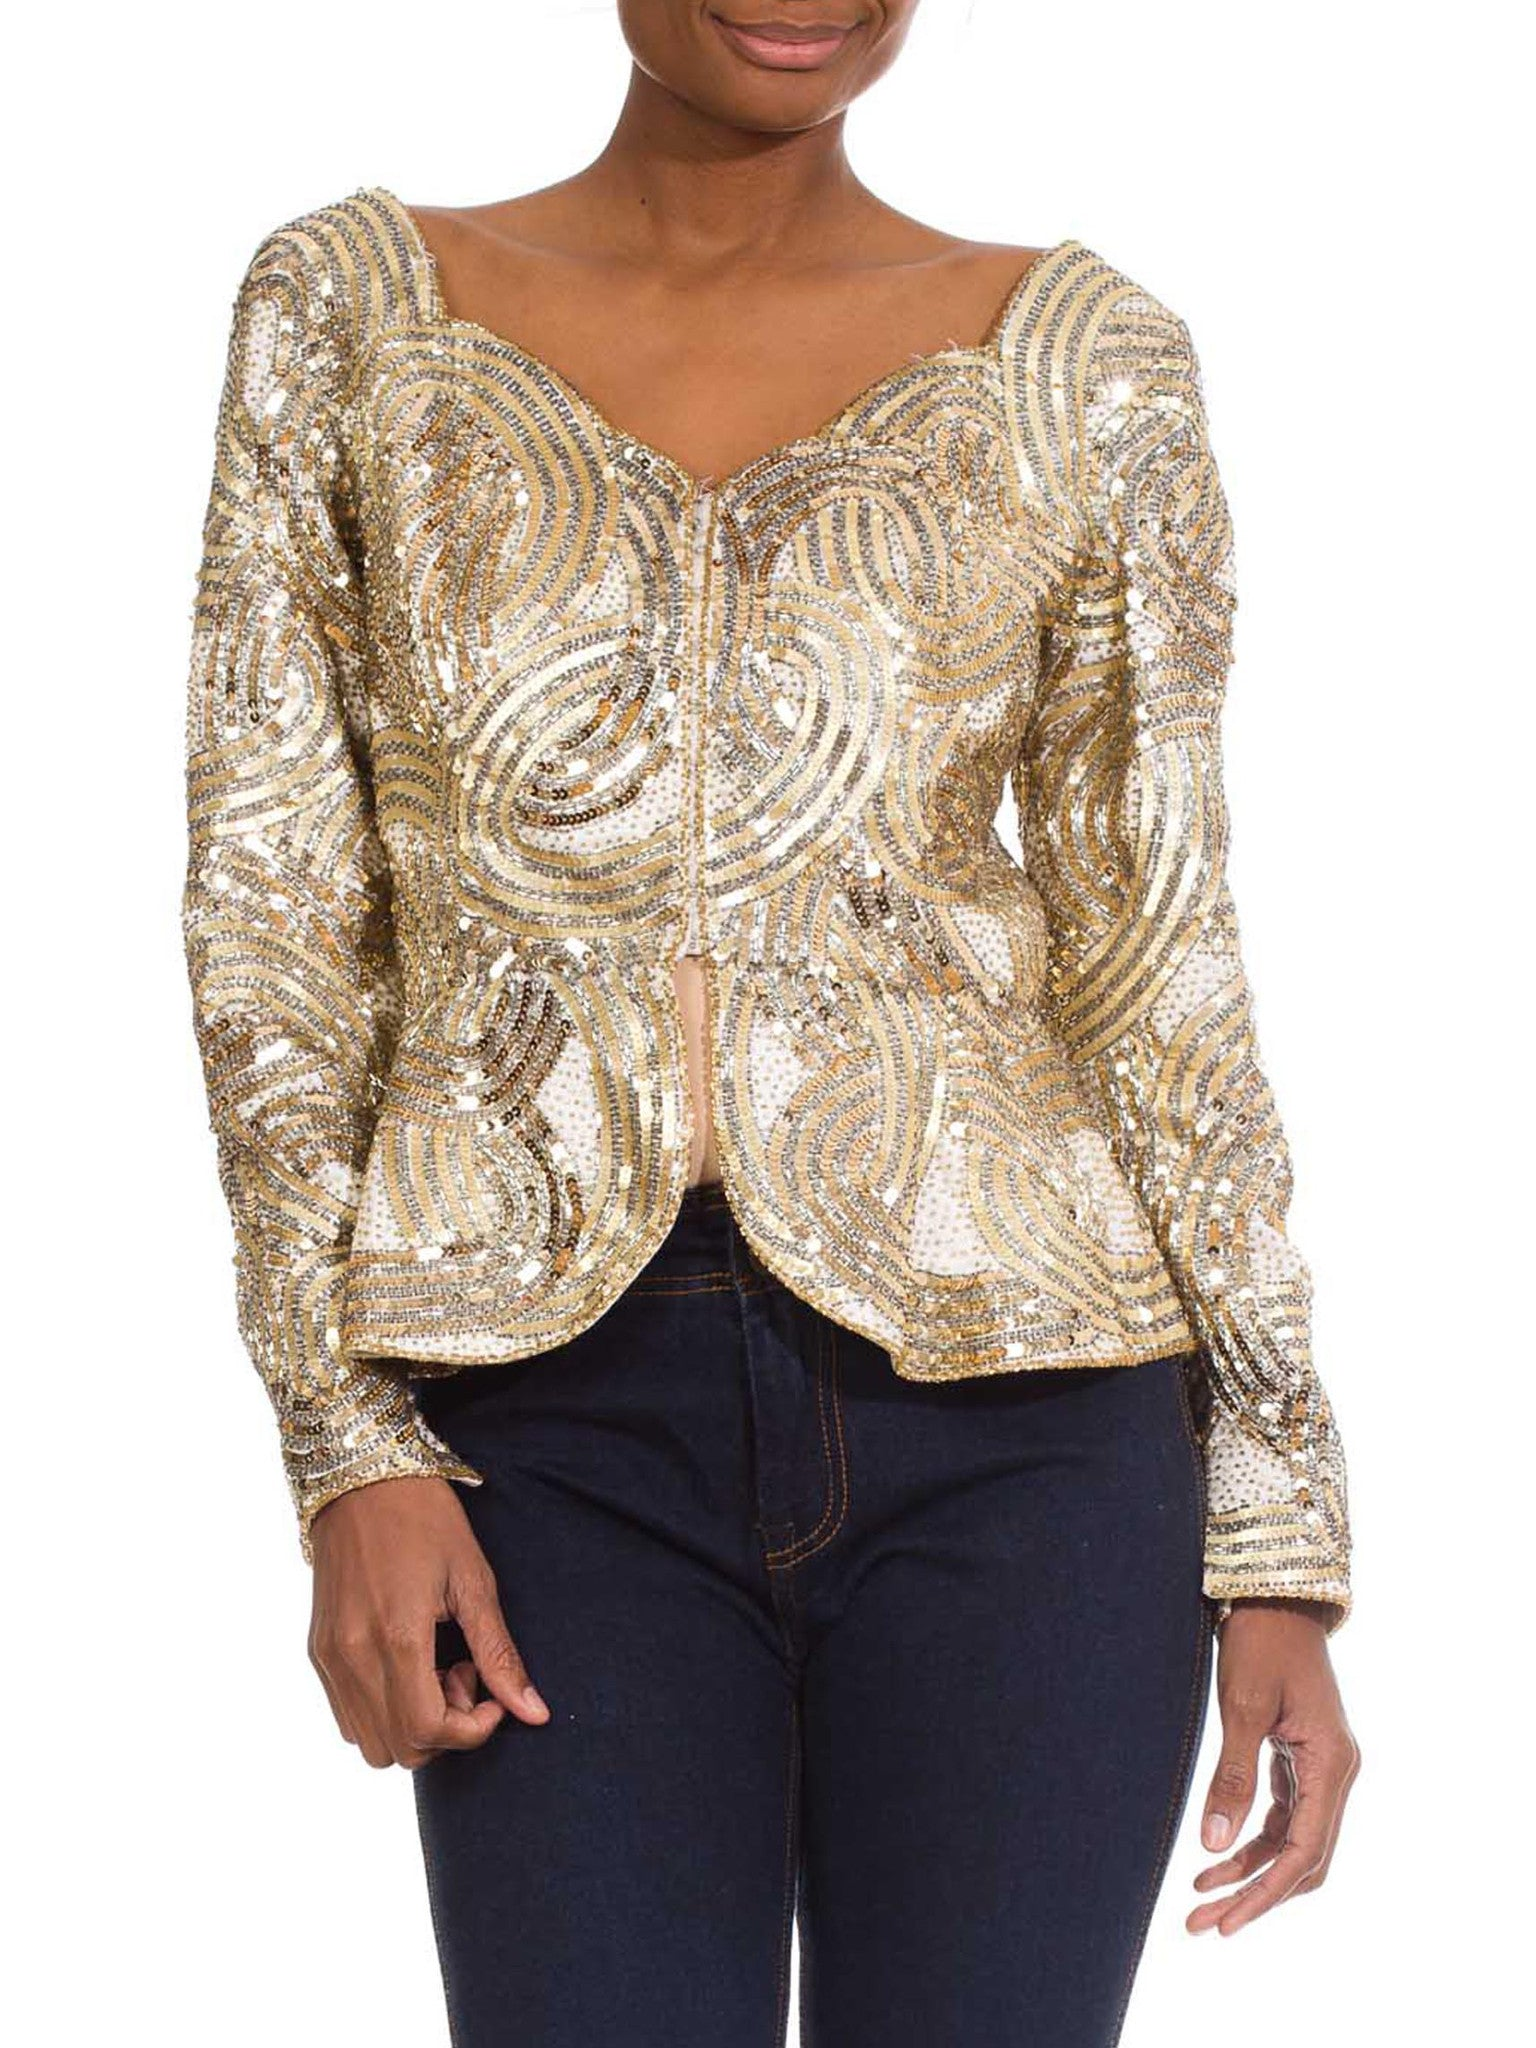 Festive Vintage 1980s Gold Beaded Jacket